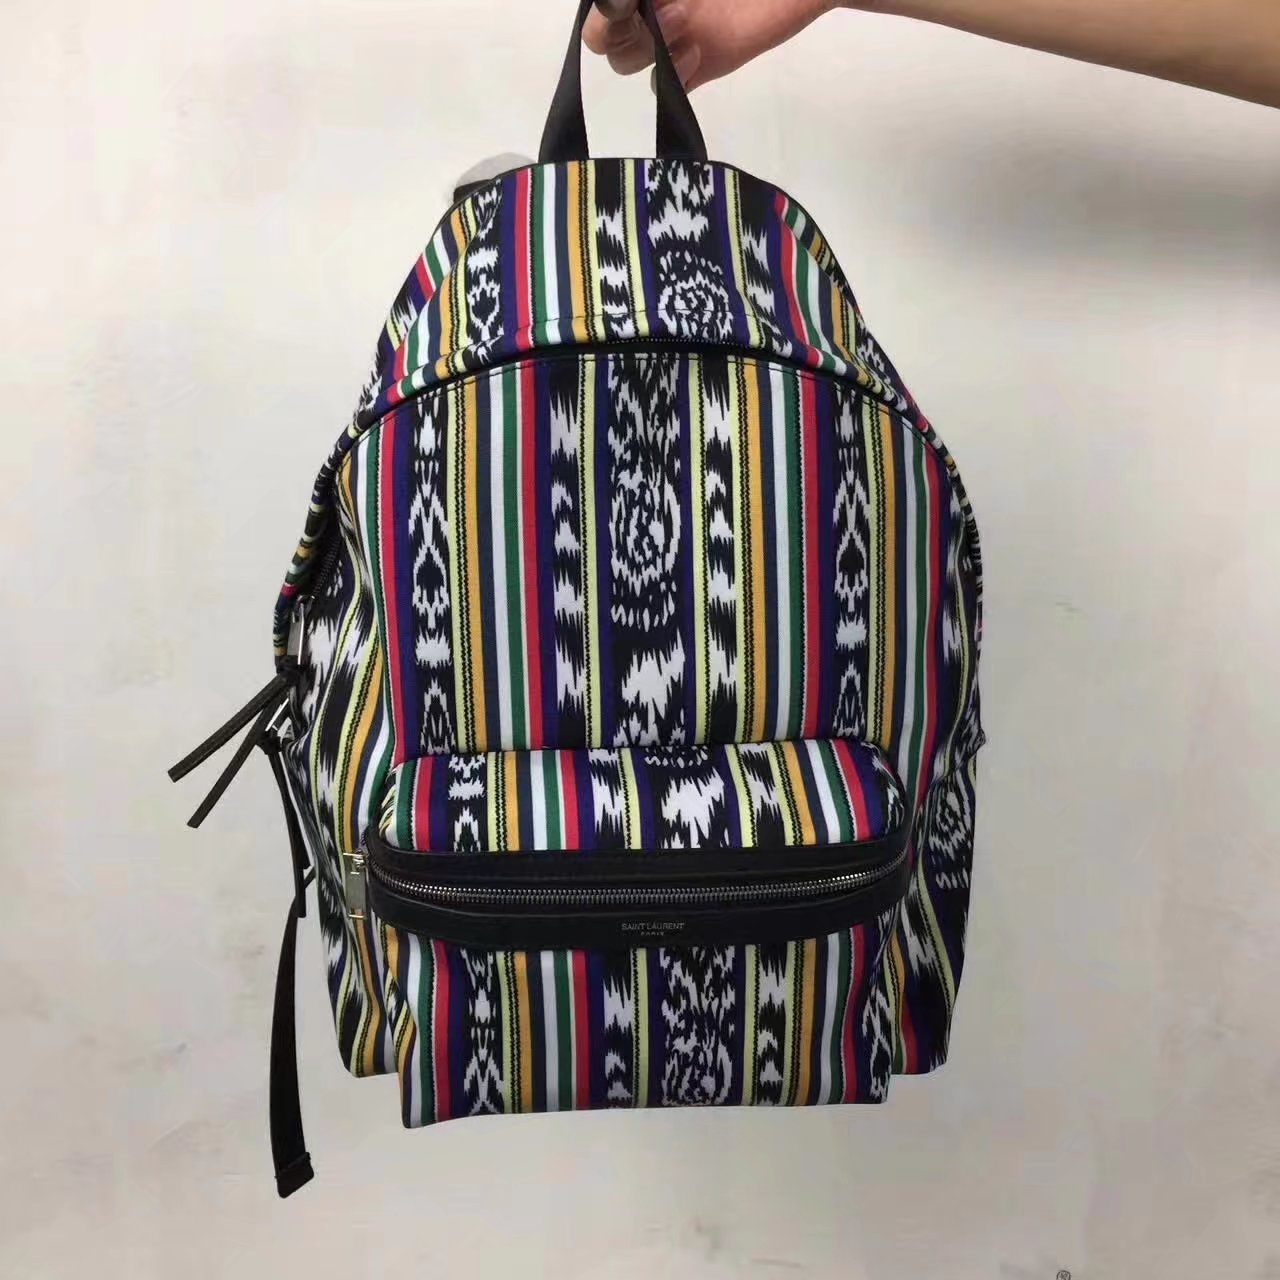 Saint Laurent Women City Backpack In Multicolored Ikat Canvas